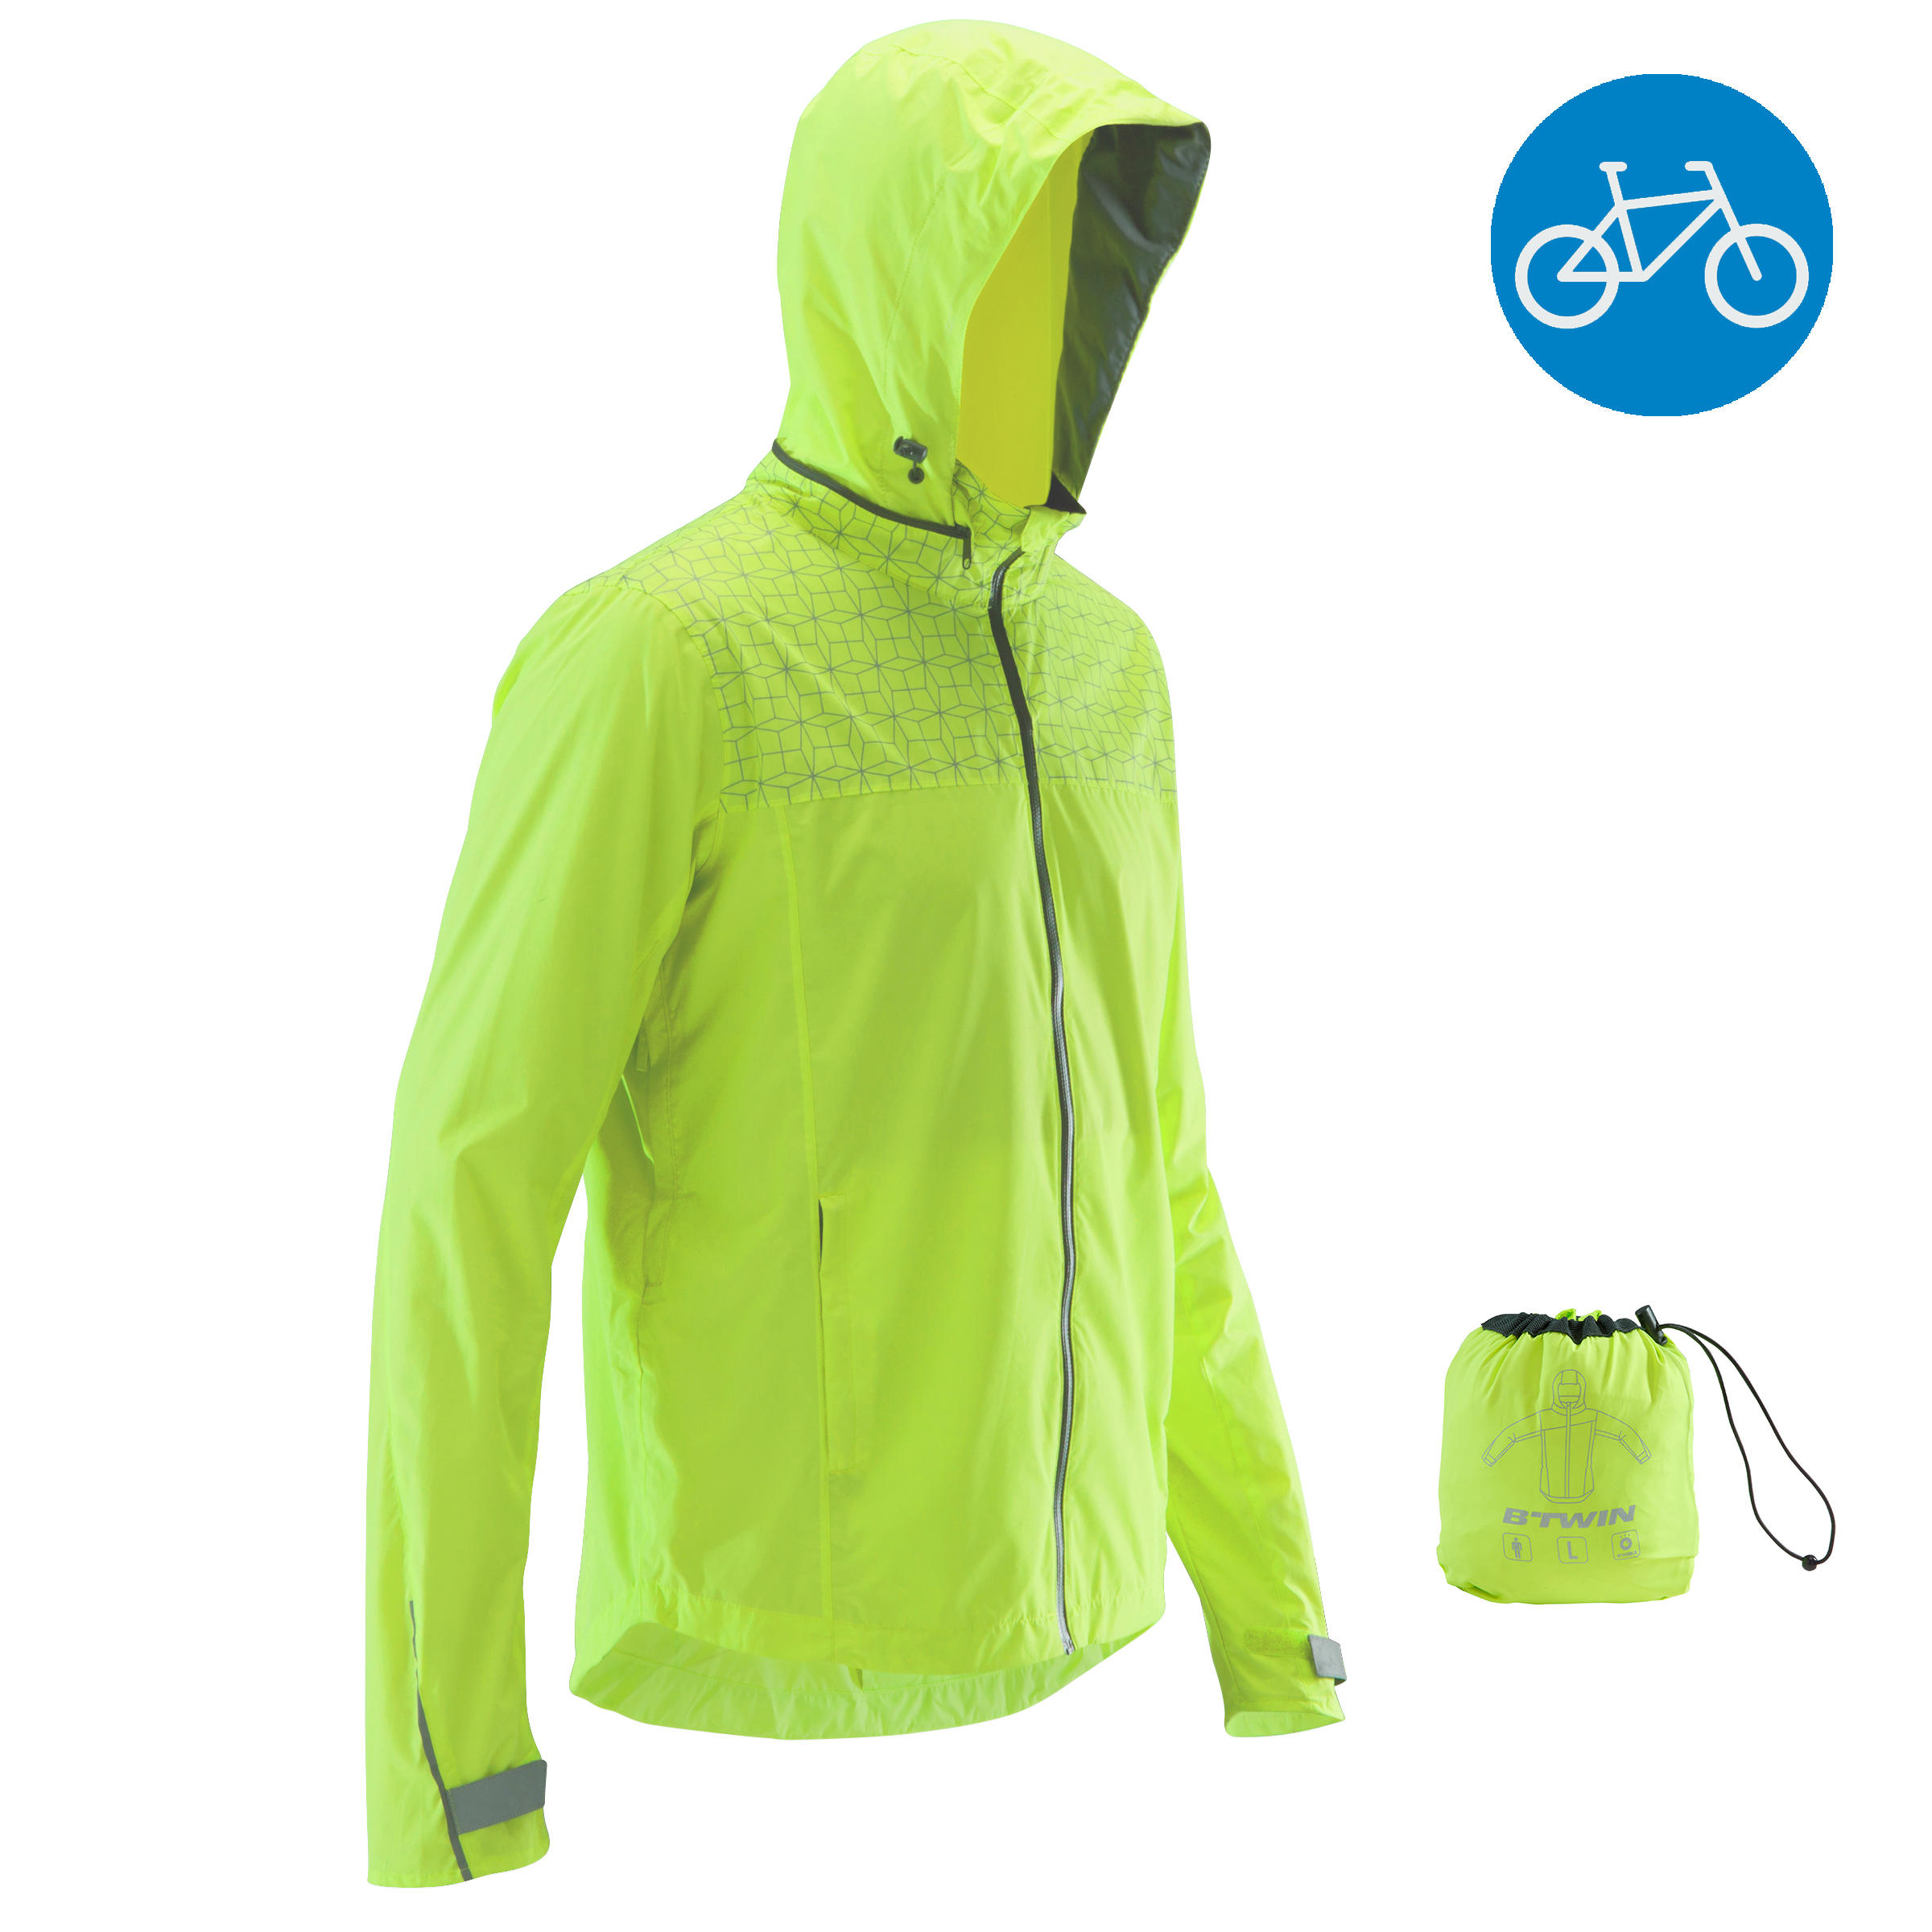 500 City Cycling Rain Jacket - Neon Yellow